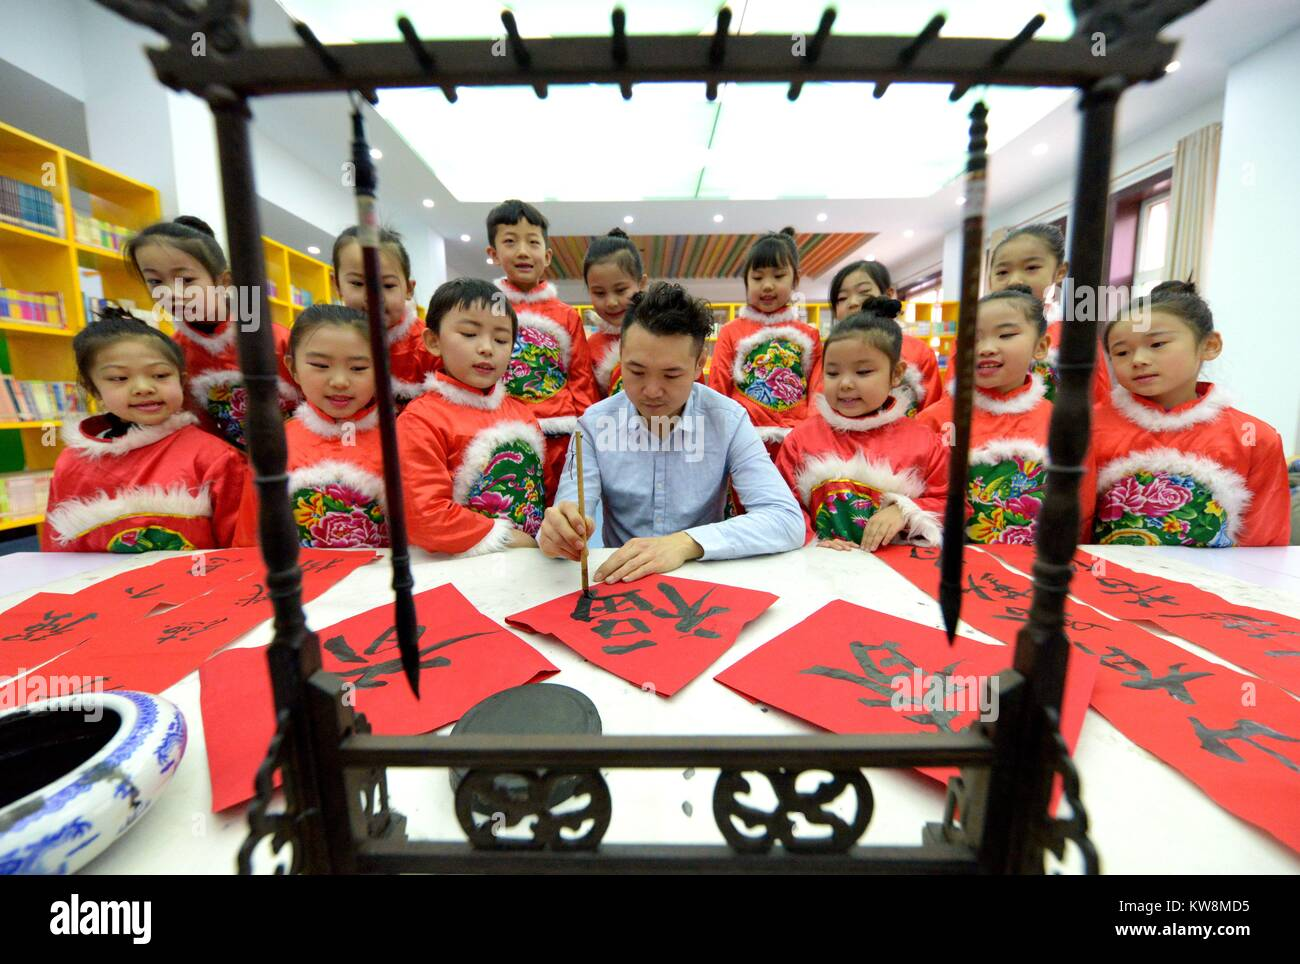 Shijiazhuang. 31st Dec, 2017. A teacher shows primary school students Chinese calligraphy during an extracurricular Stock Photo